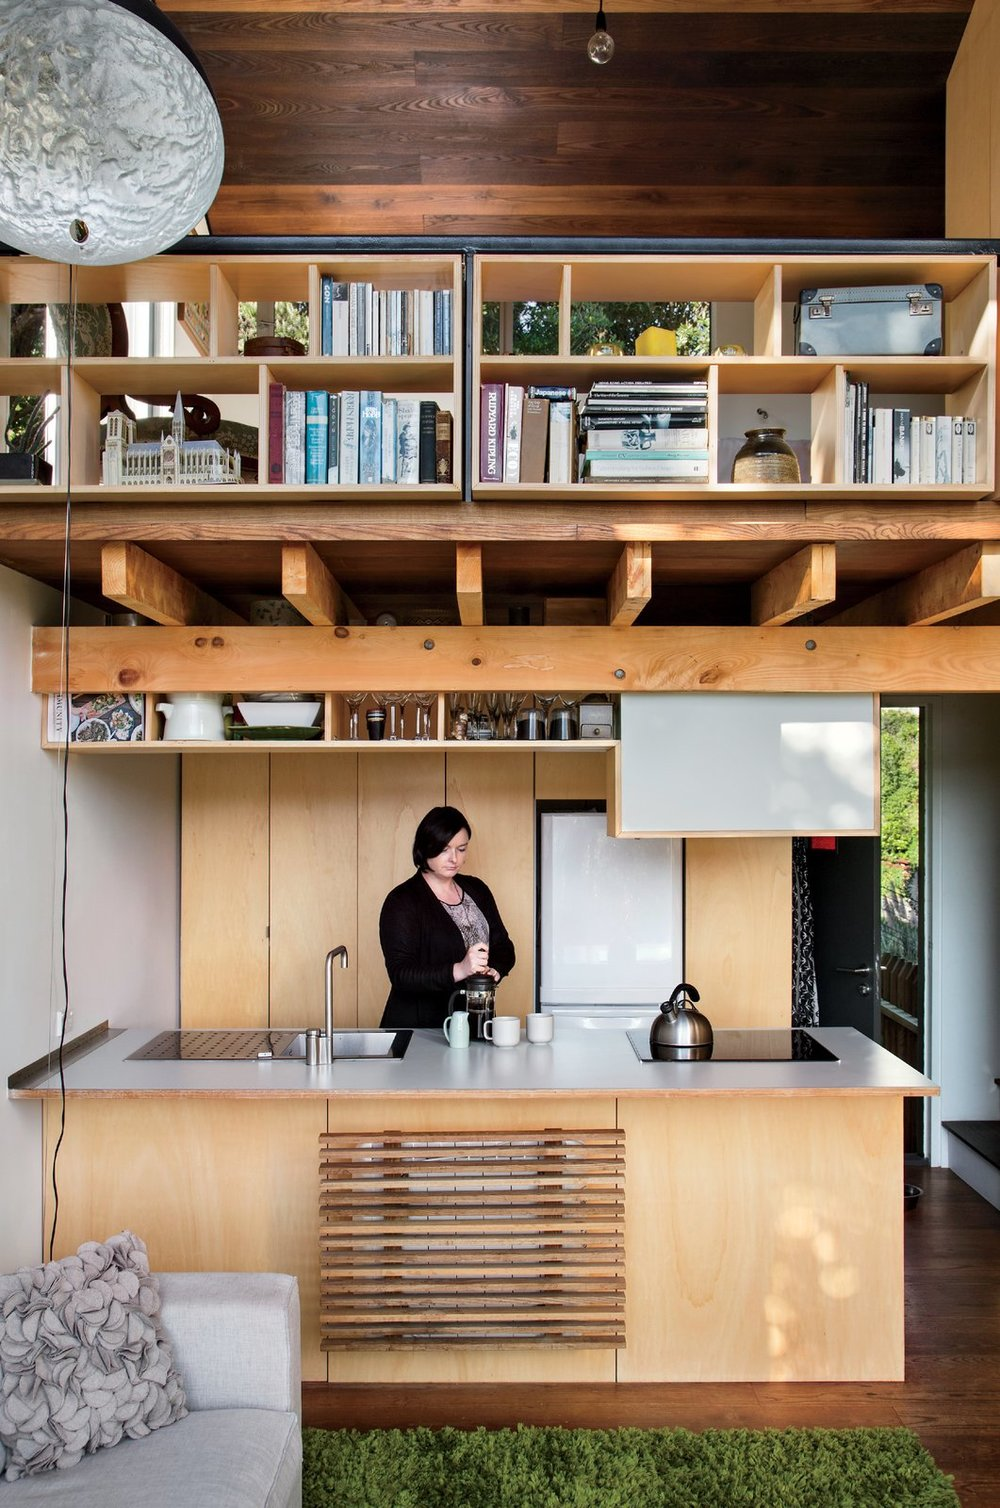 On the ground floor, Simpson's fiancée, Krysty Peebles, makes coffee in a compact kitchen outfitted with a Foraze Panni sink, Bosch induction cooktop, and Mitsubishi refrigerator.  Photo: Paul McCredie